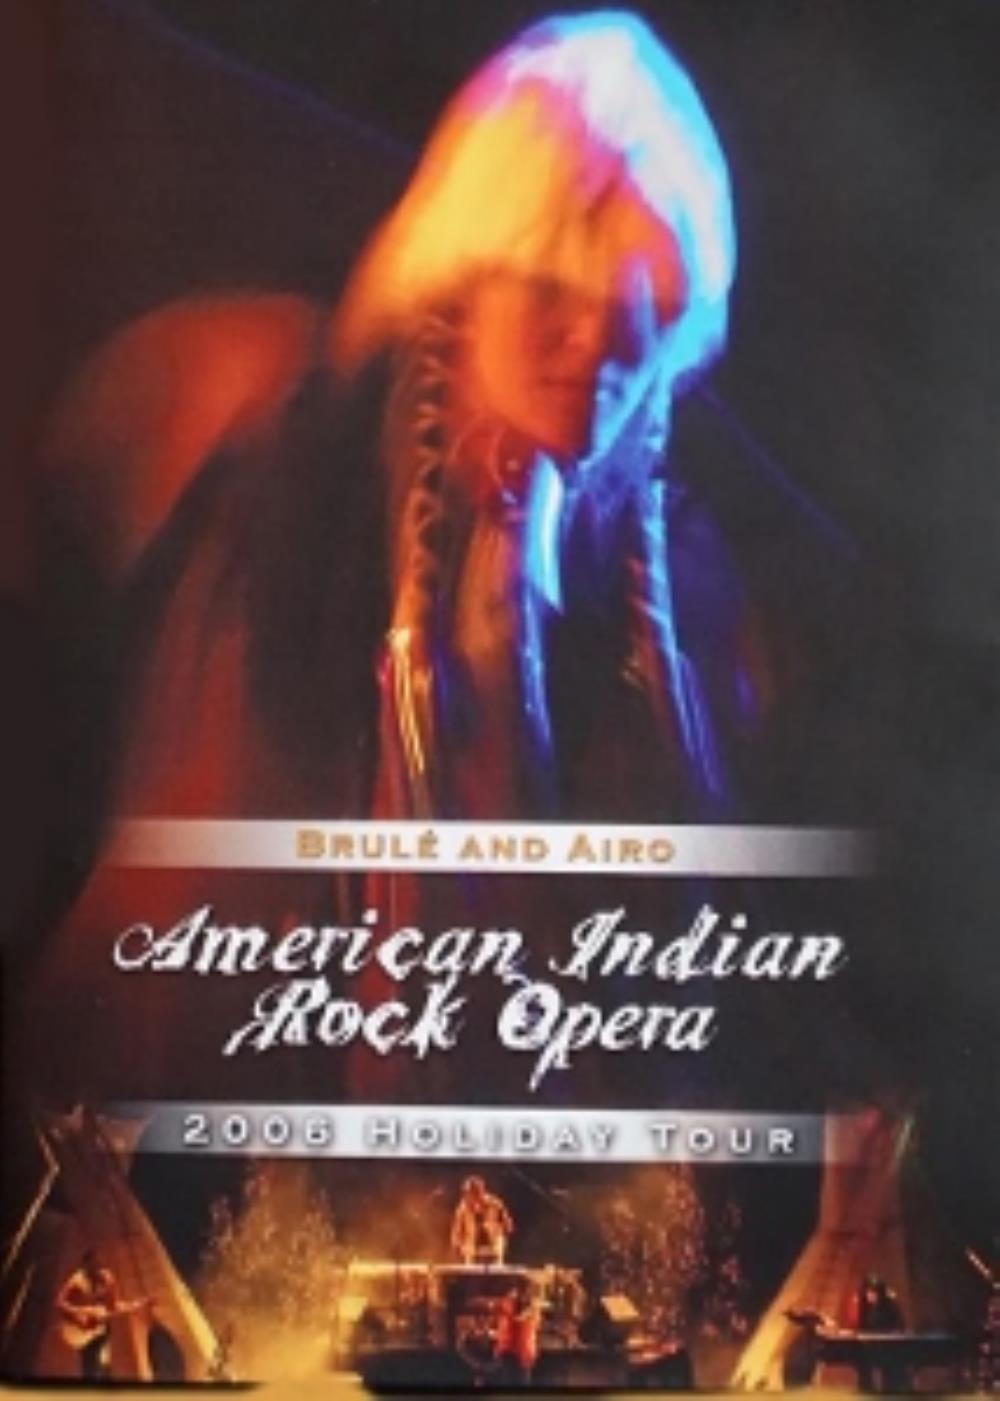 American Indian Rock Opera - 2006 Holiday Tour Brulé And AIRO by VARIOUS ARTISTS (CONCEPT ALBUMS & THEMED COMPILATIONS) album cover